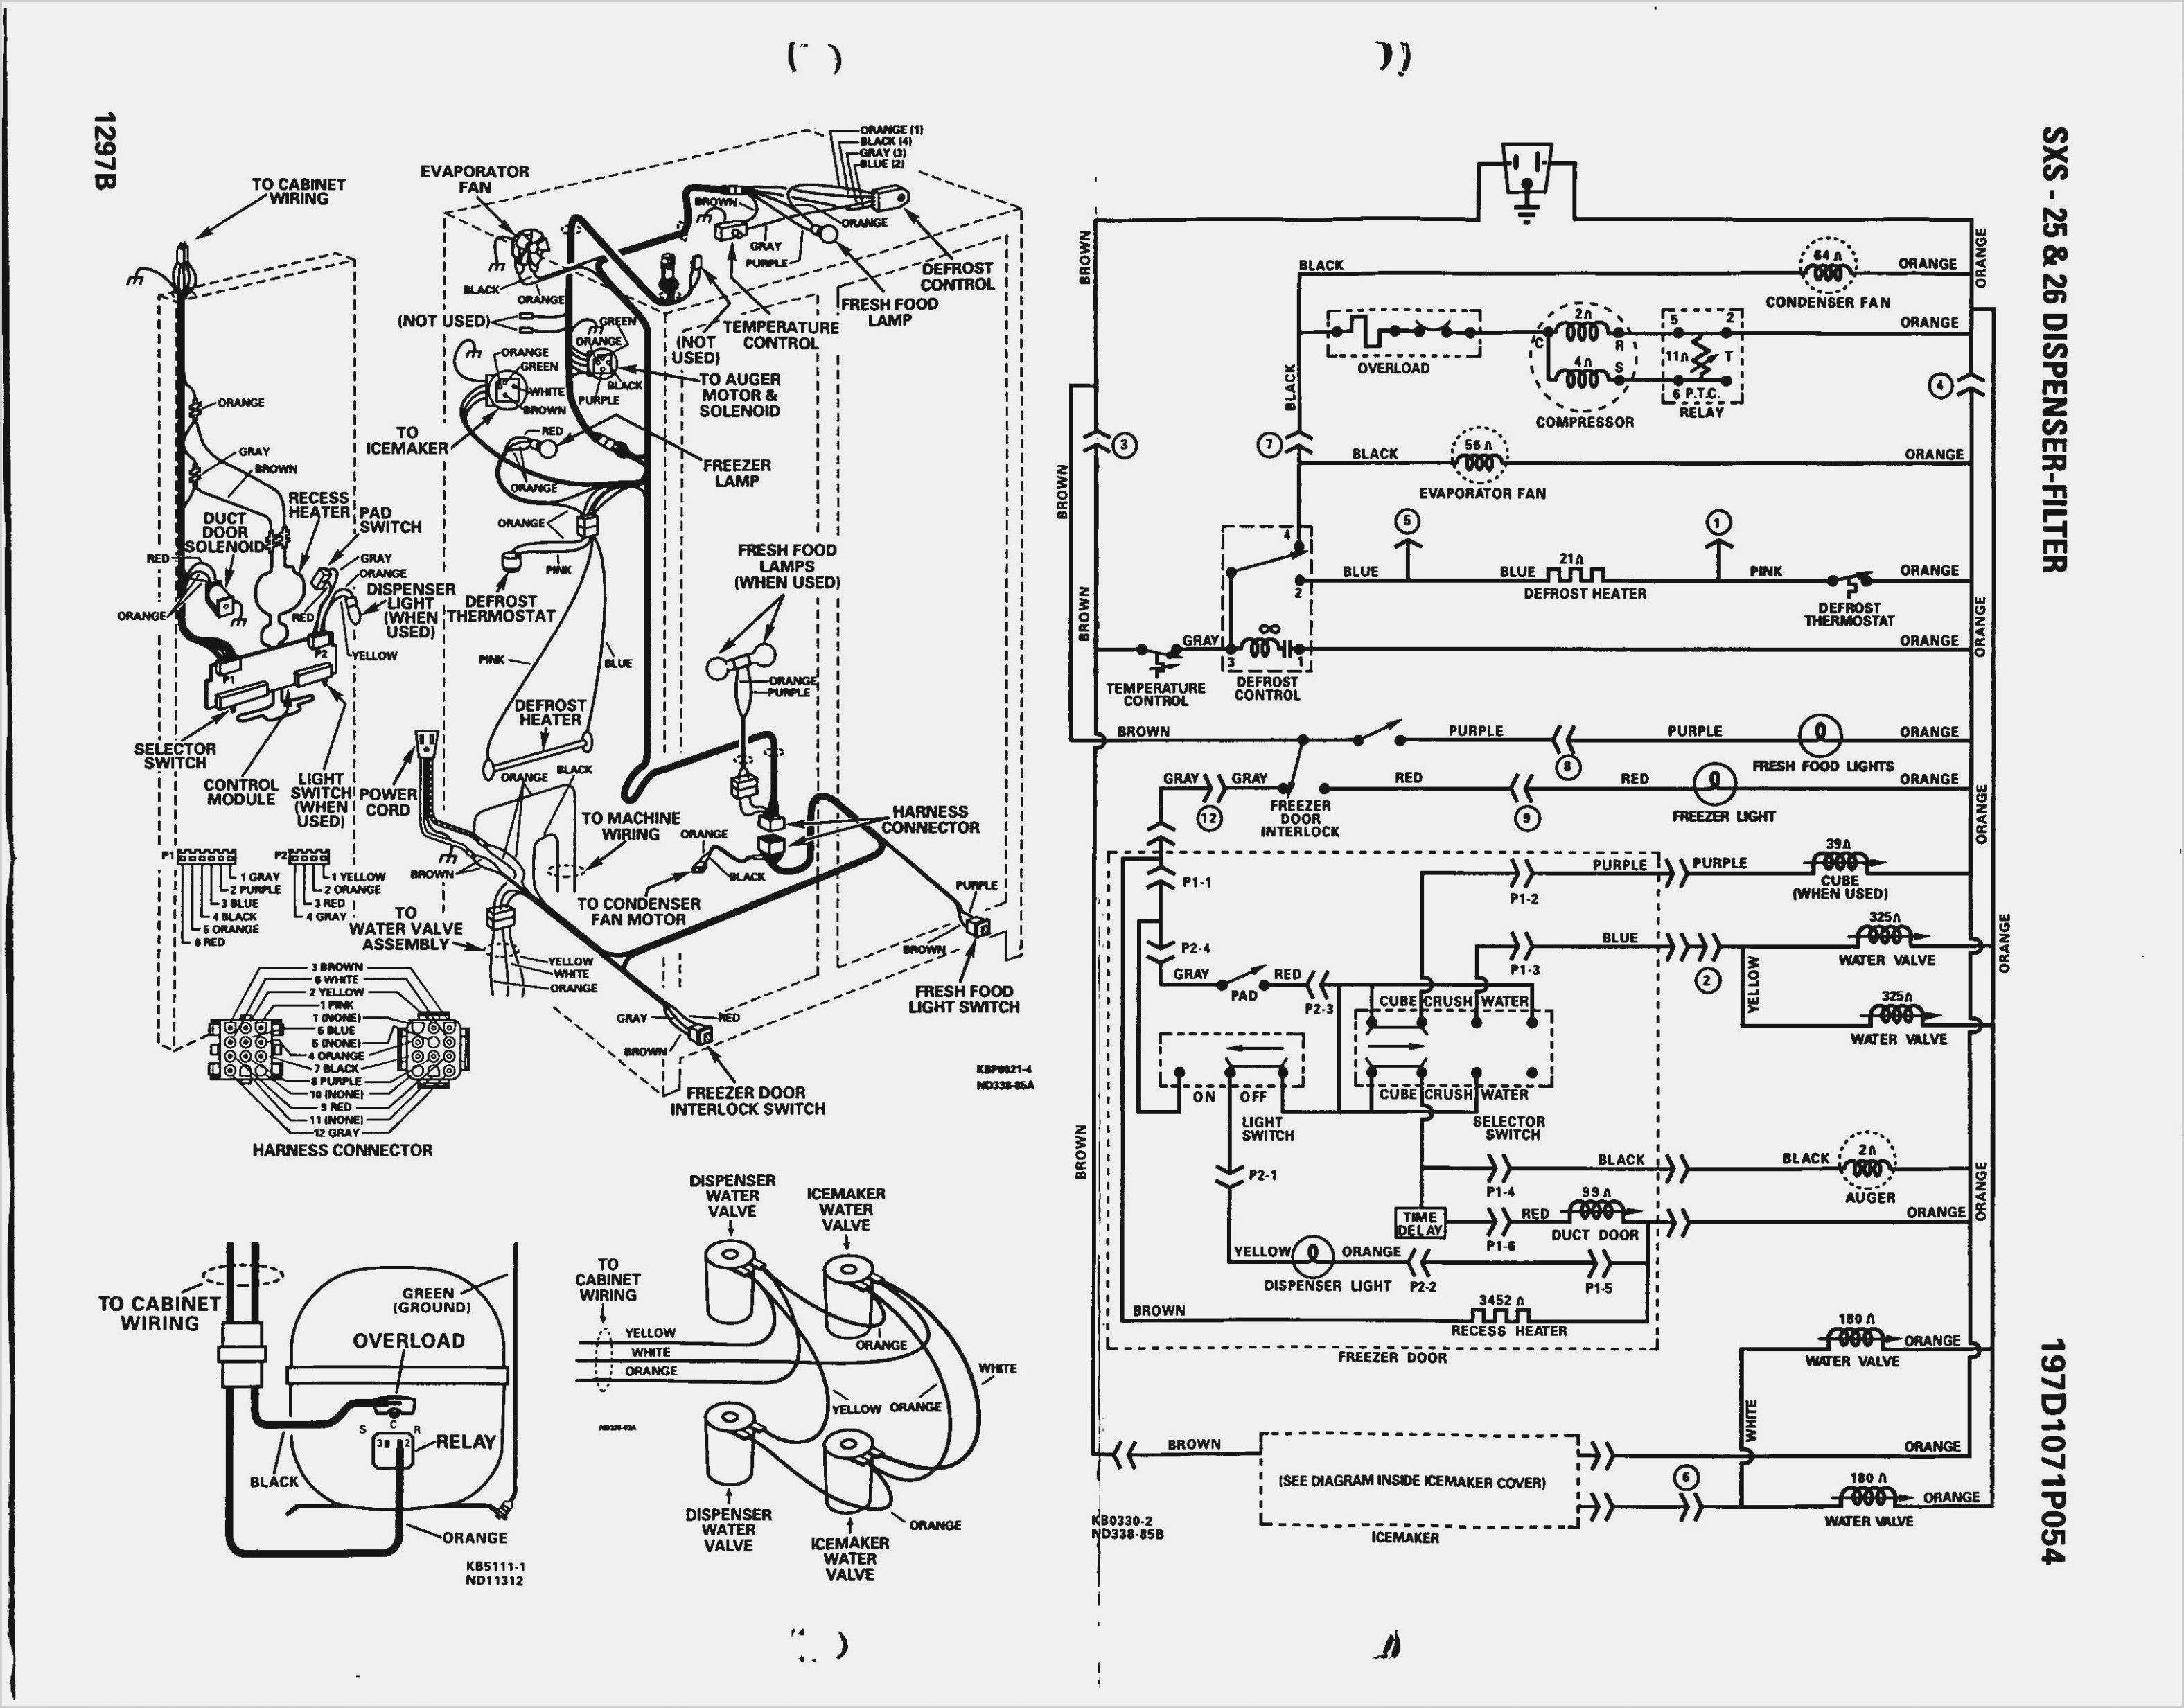 [DIAGRAM_5FD]  Wiring Diagram Of Washing Machine Whirlpool Semi Automatic Washing Machine  Wiring Diagram Electrical | Frases de educacion, Lavadora whirlpool,  Lavadora | Whirlpool Semi Automatic Washing Machine Wiring Diagram |  | Pinterest